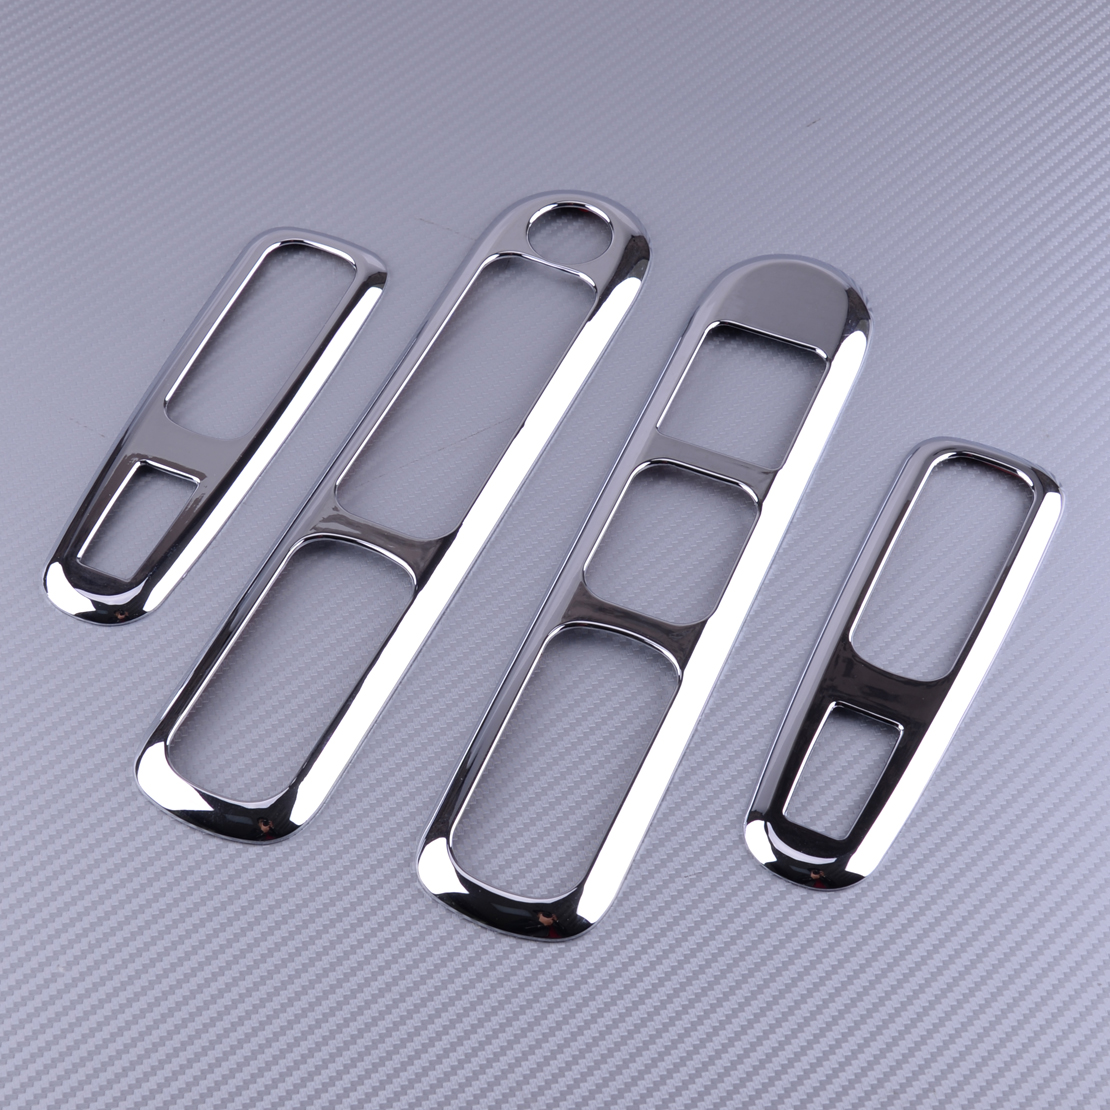 beler Chrome Car Door Armrest Panel Handle Holder Window Lift Switch Button Cover Trim Sticker Fit For Peugeot 3008 2009-2015 image